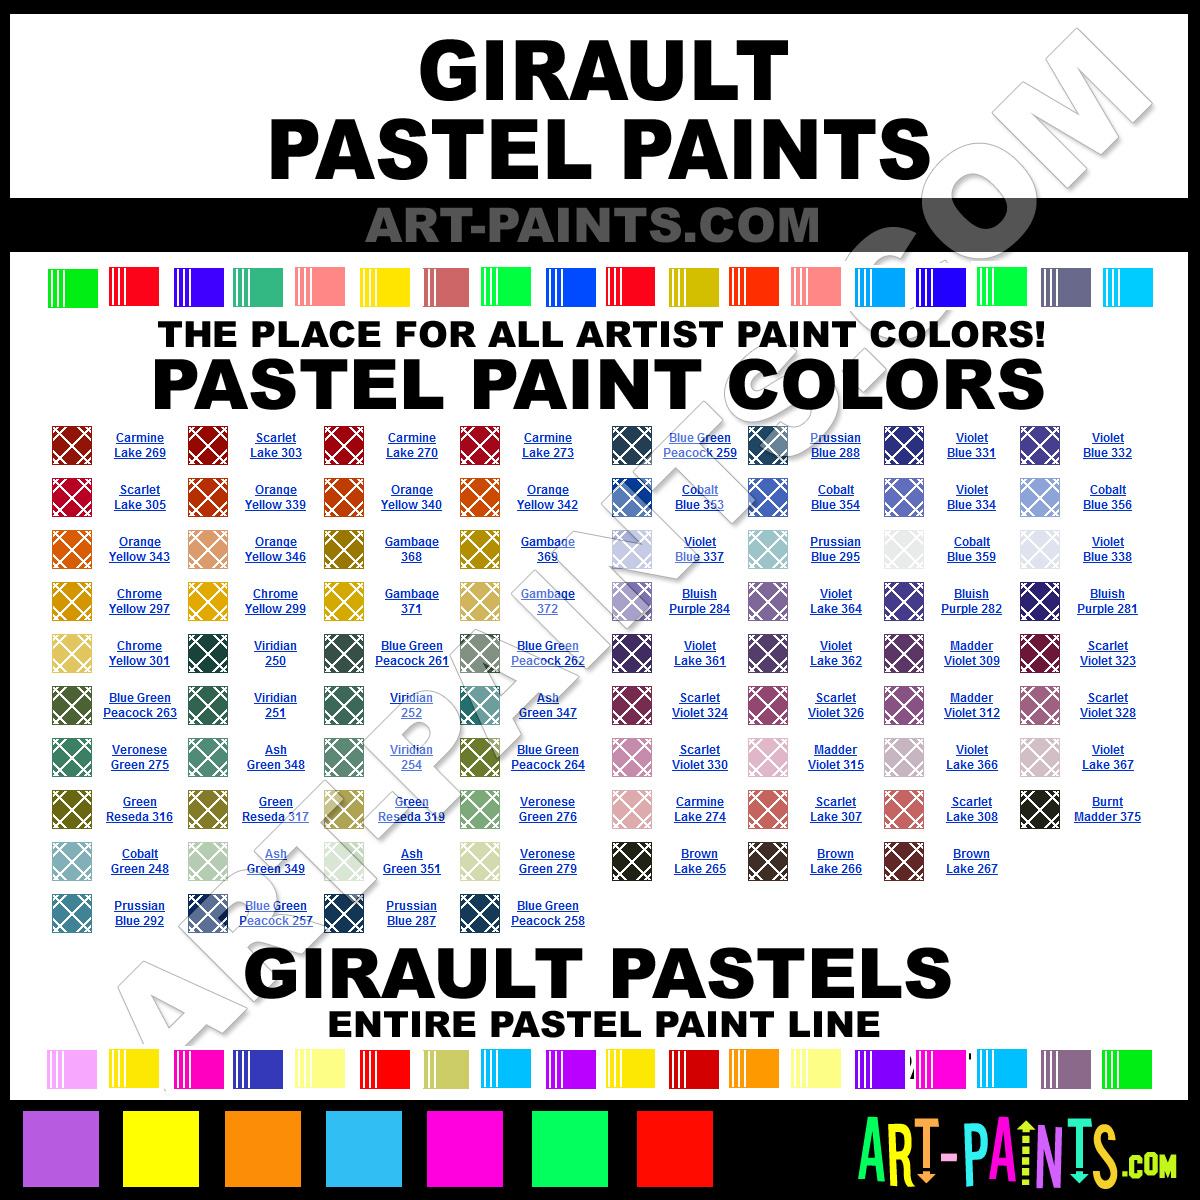 Paint Colors And Brands: Girault Paint Brands, Pastel